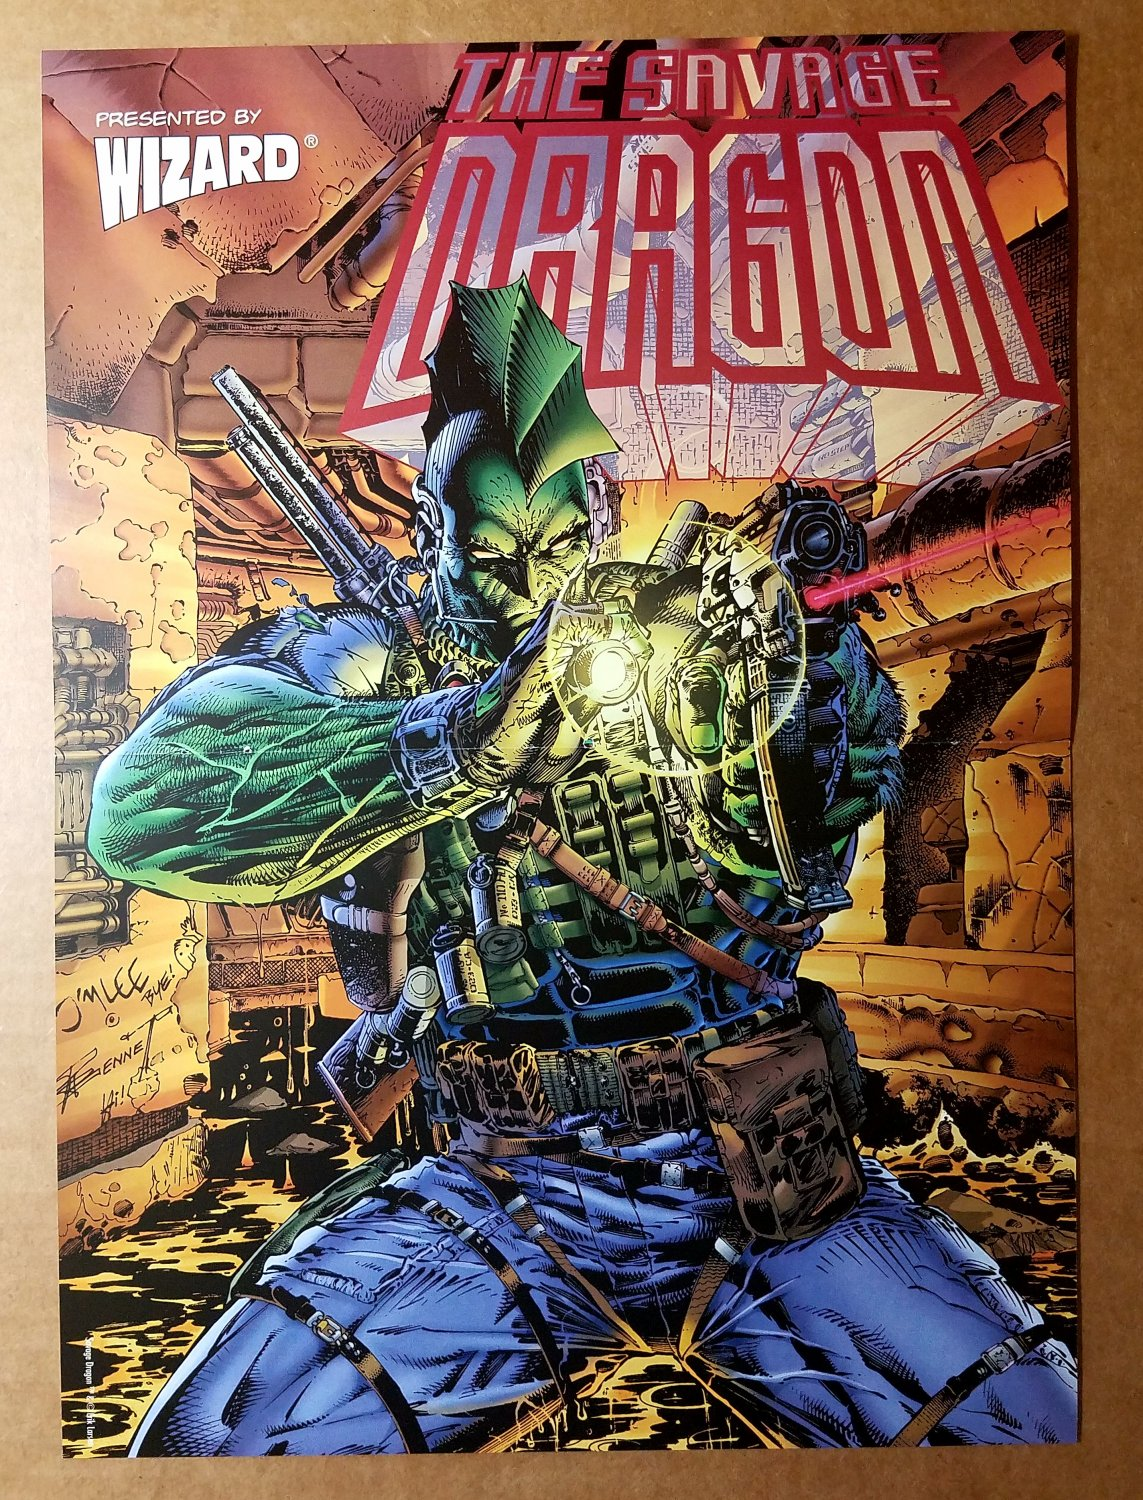 Savage Dragon Image Comic Poster by Jim Lee